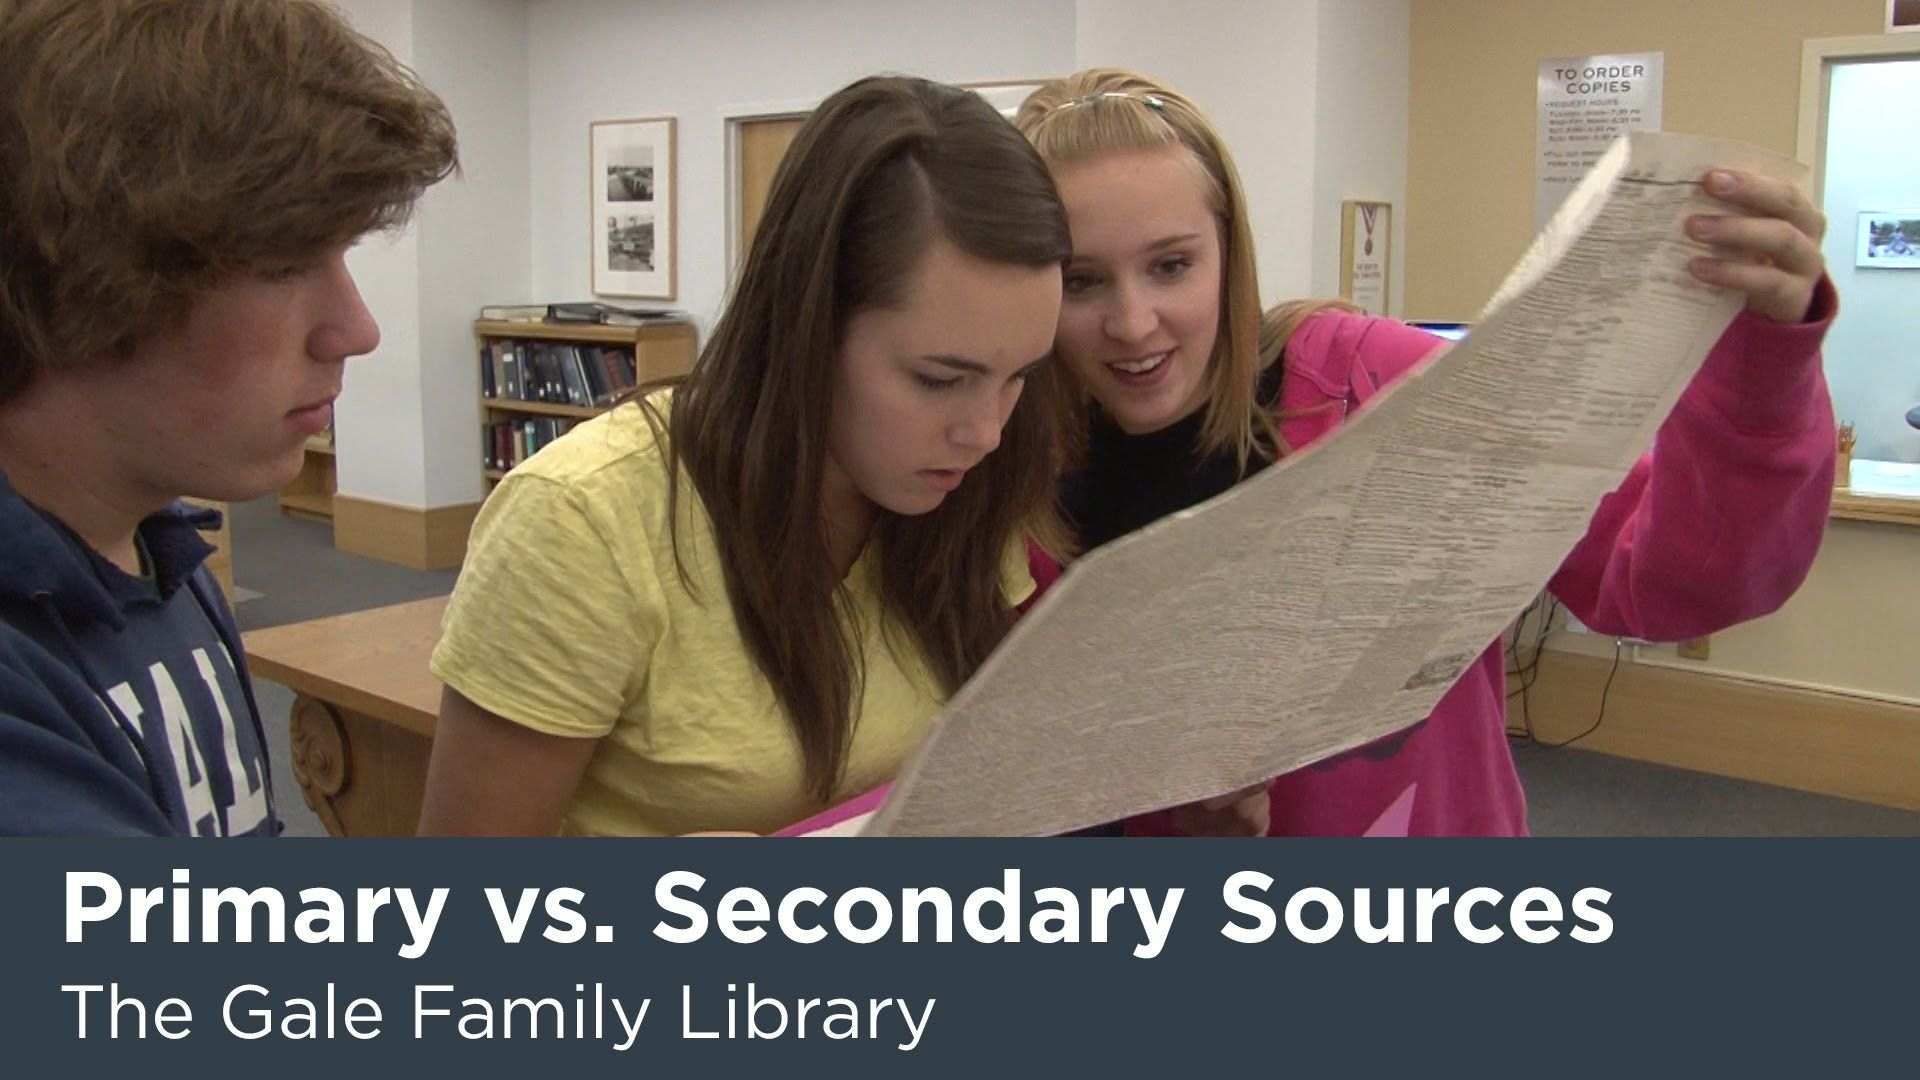 Often students come to the Gale Family Library to research primary source materials, but find they're not quite sure what a primary source is. Learn the diff...